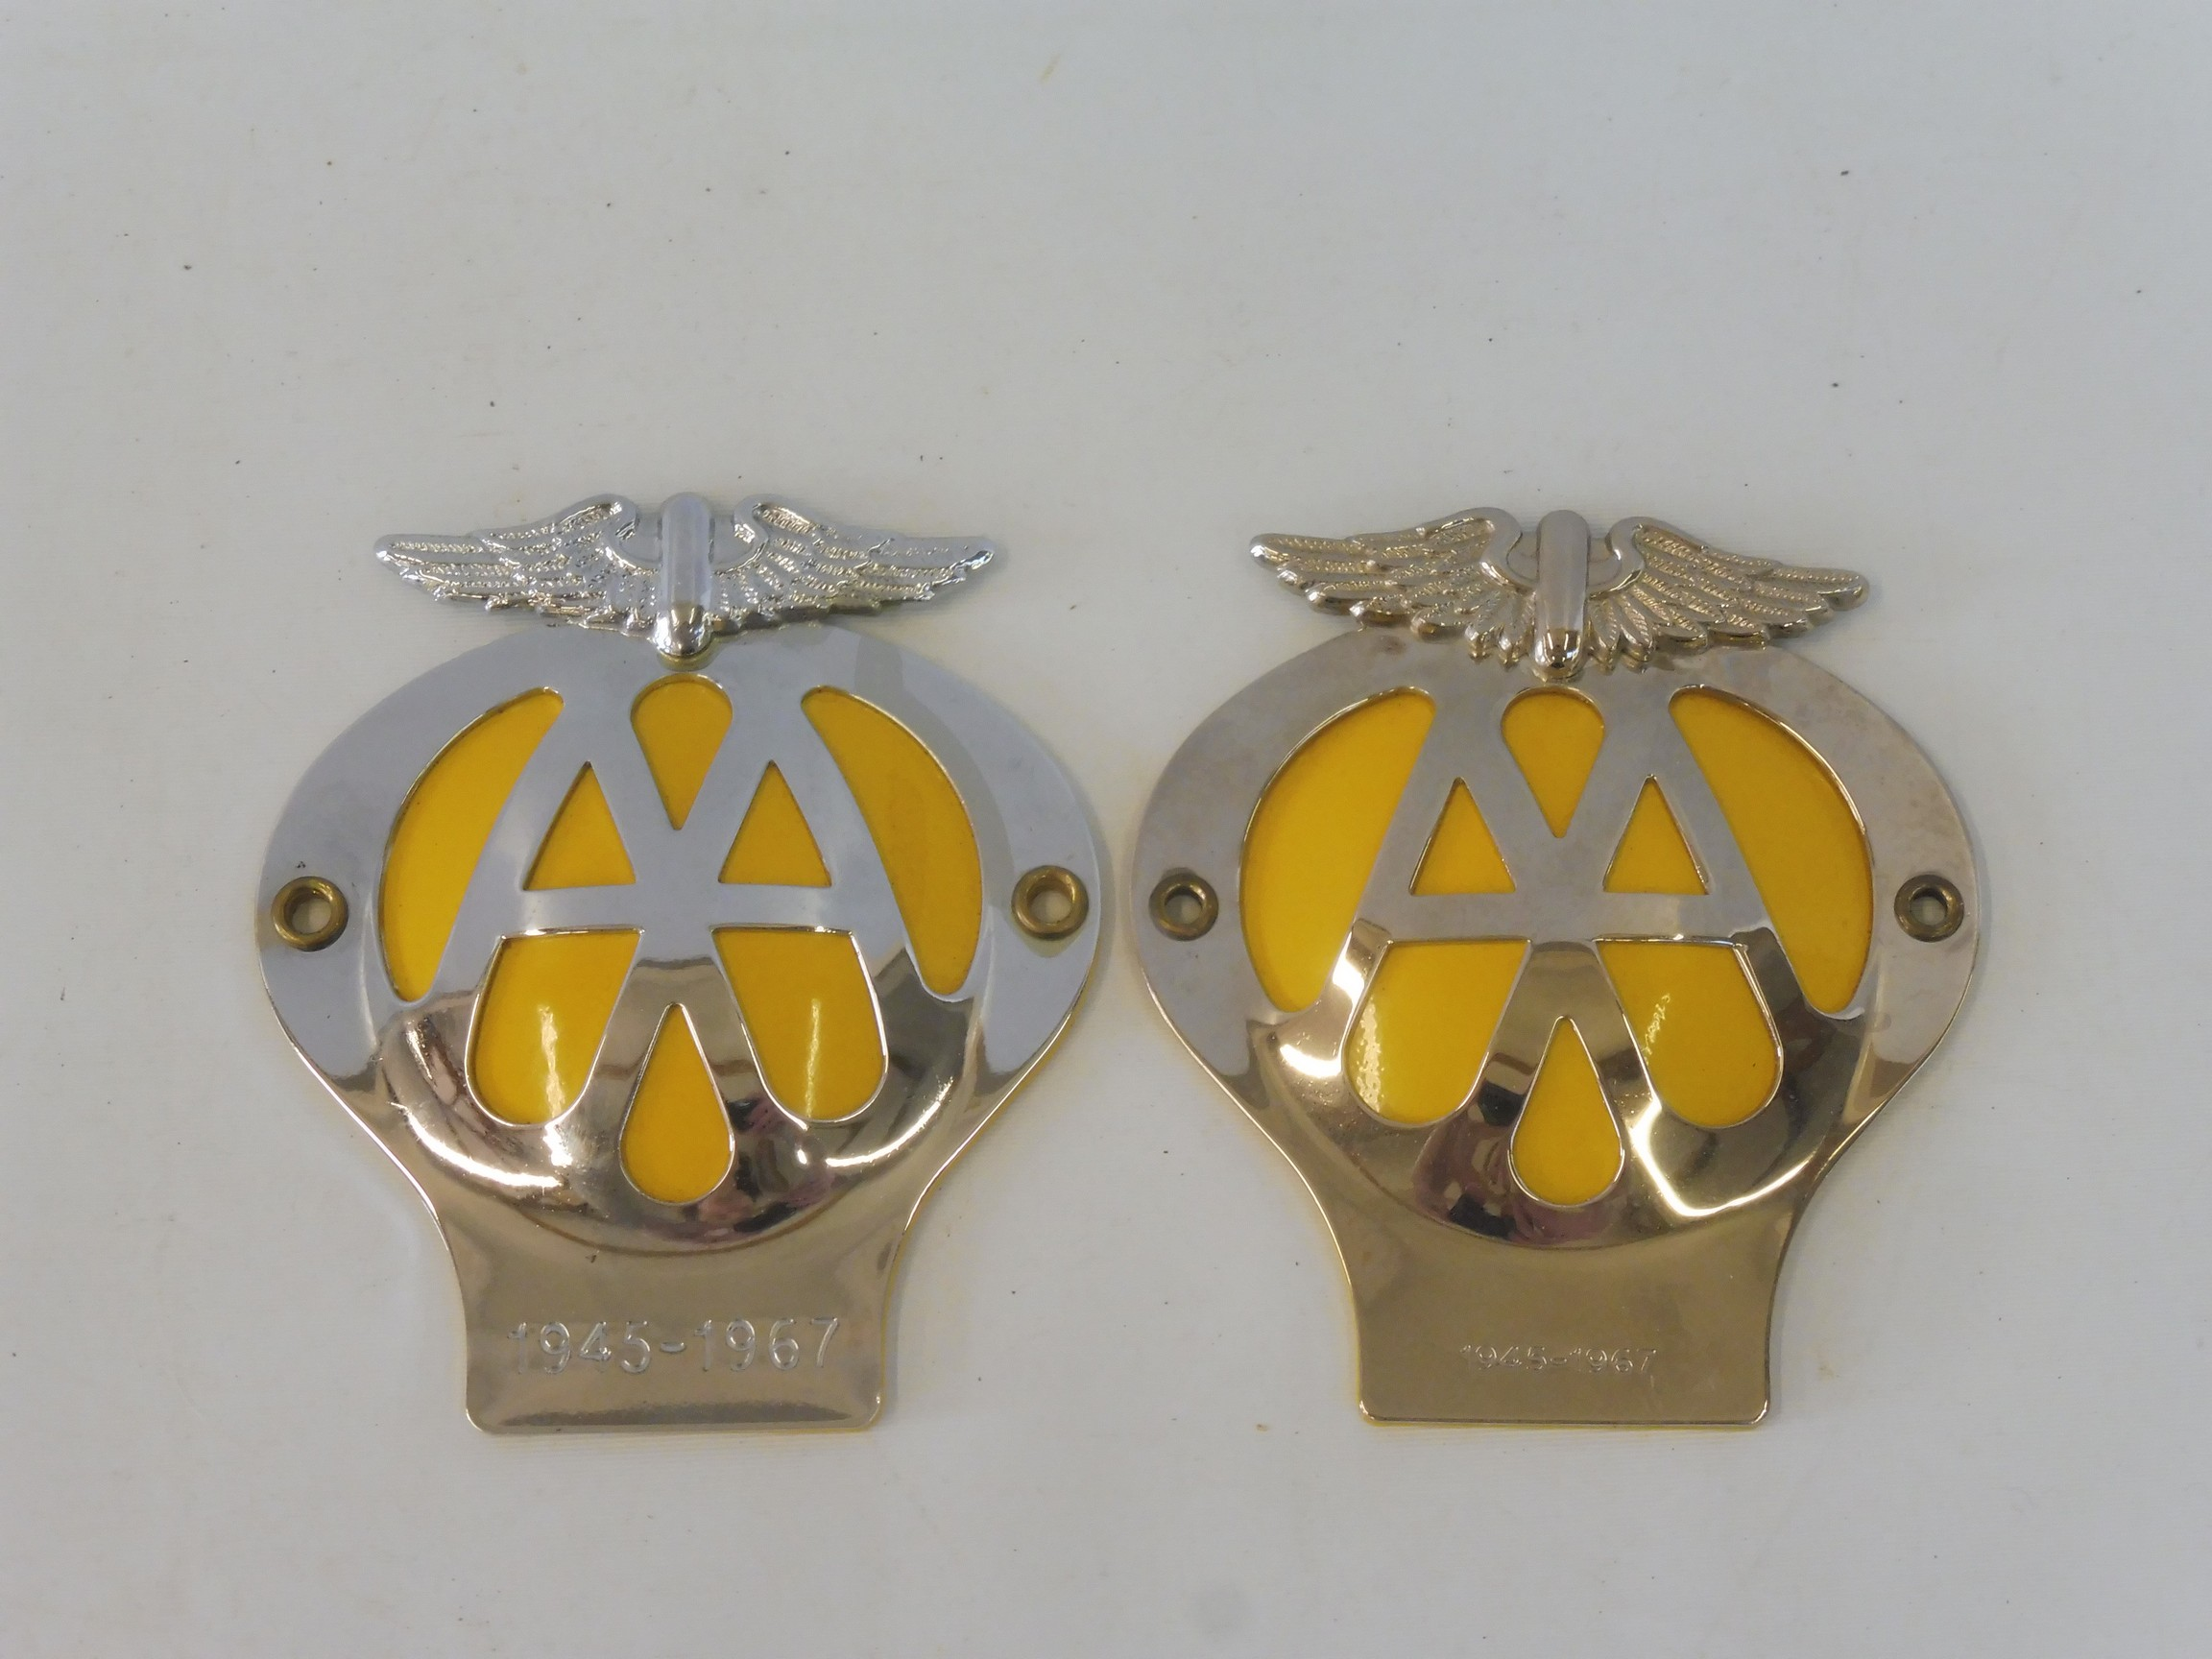 Two AA 1995 Anniversary reproduction badges, type 2A and type 2B both marked with the years 1945-